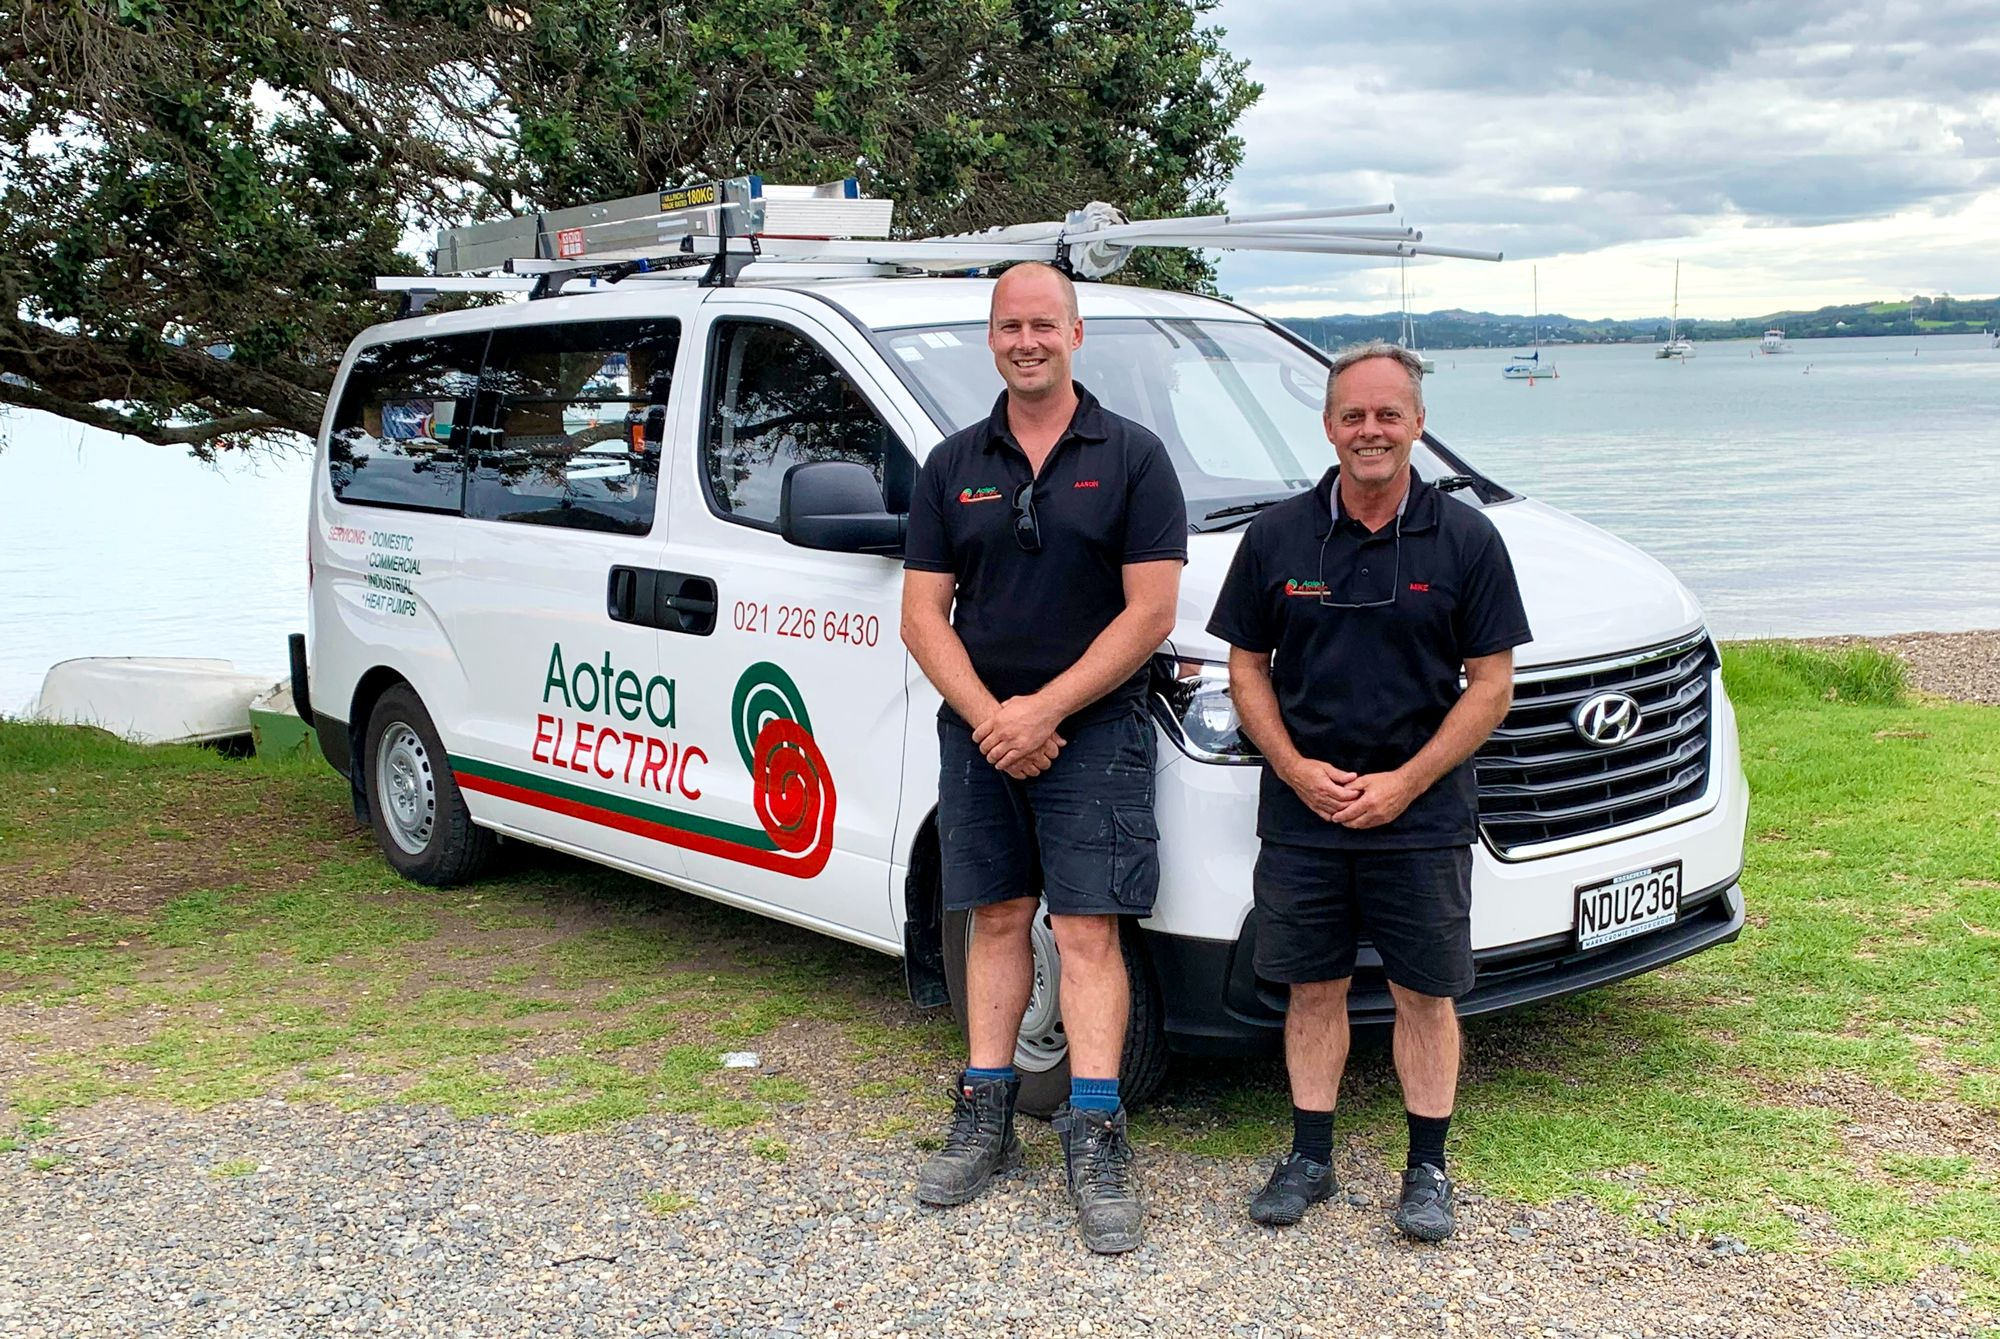 Aotea Electric Gains Momentum In Northland